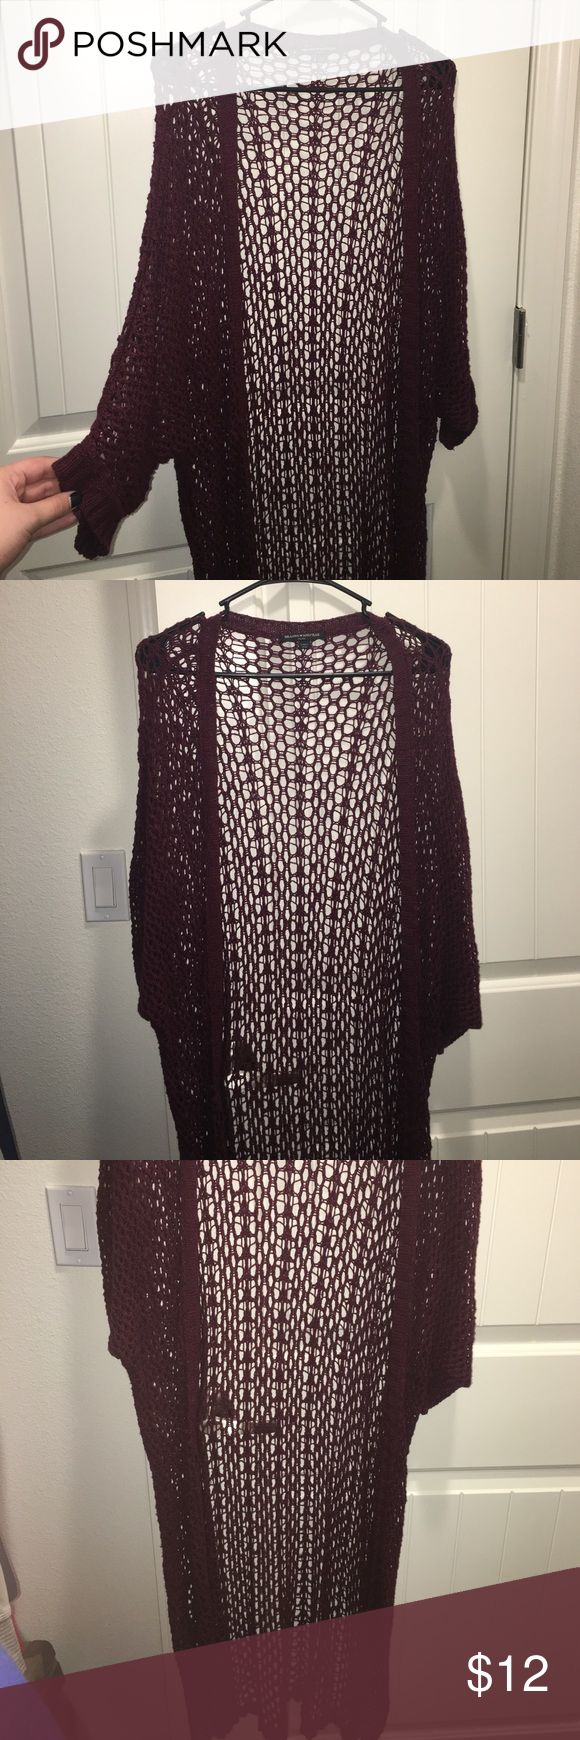 Brandy Melville Cardigan Long Burgundy Crocheted Cardigan. One Size Fits All. Brandy Melville Sweaters Cardigans